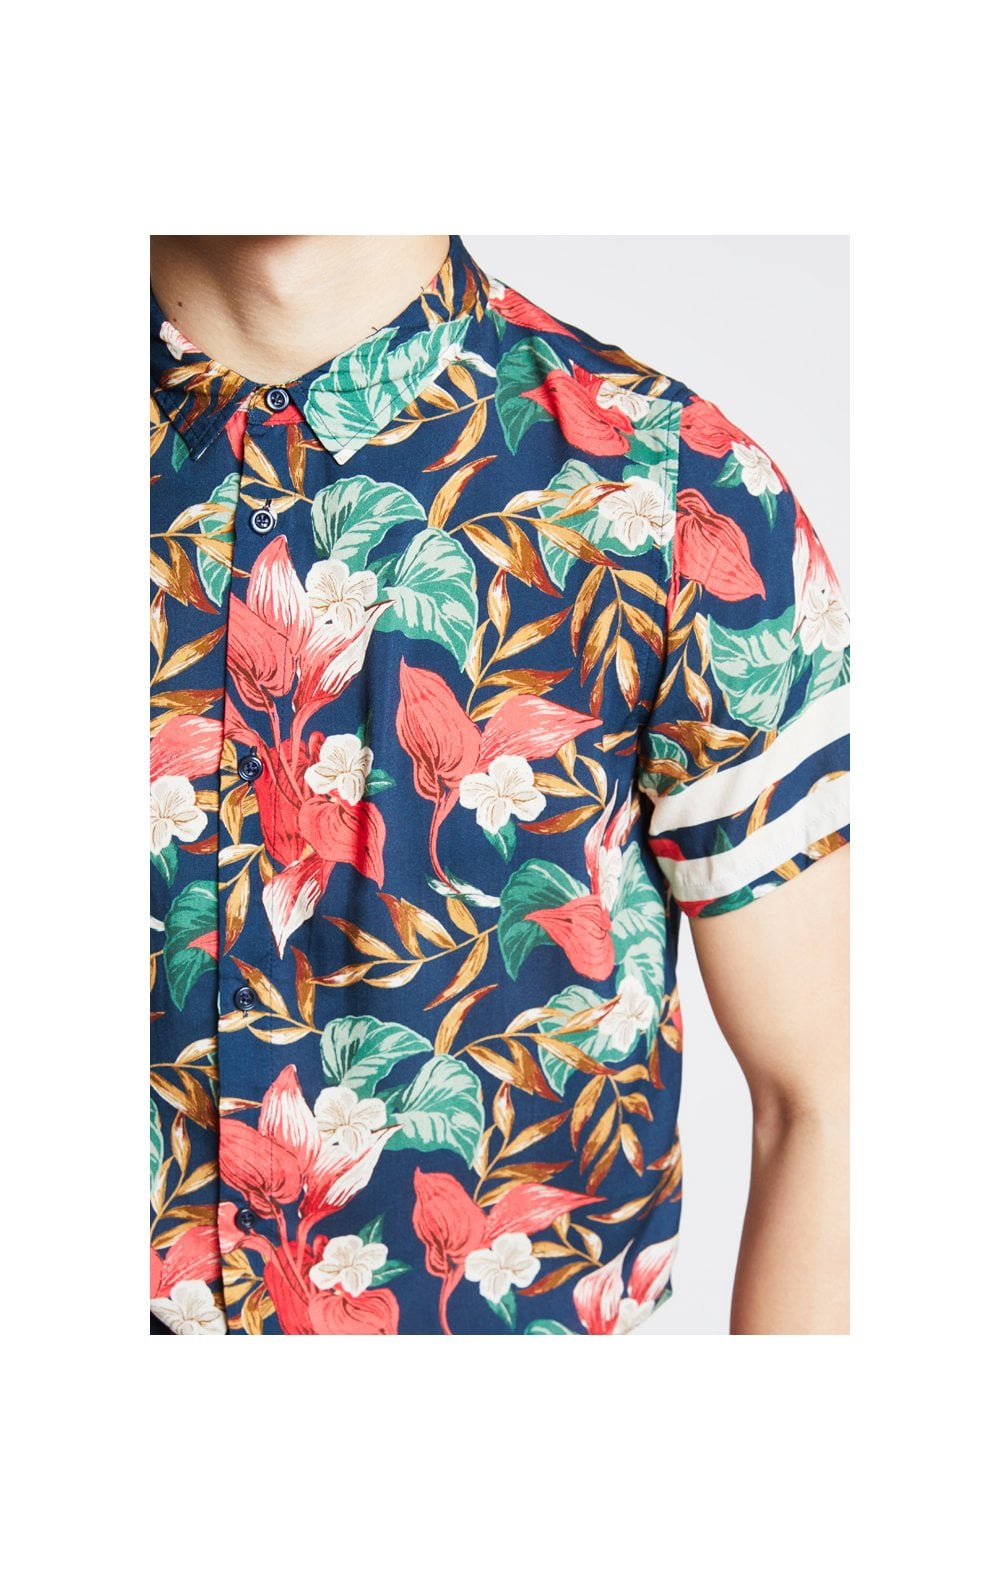 "Illusive London Tropicale Camicia ""Resot' Tropicale Leaf"